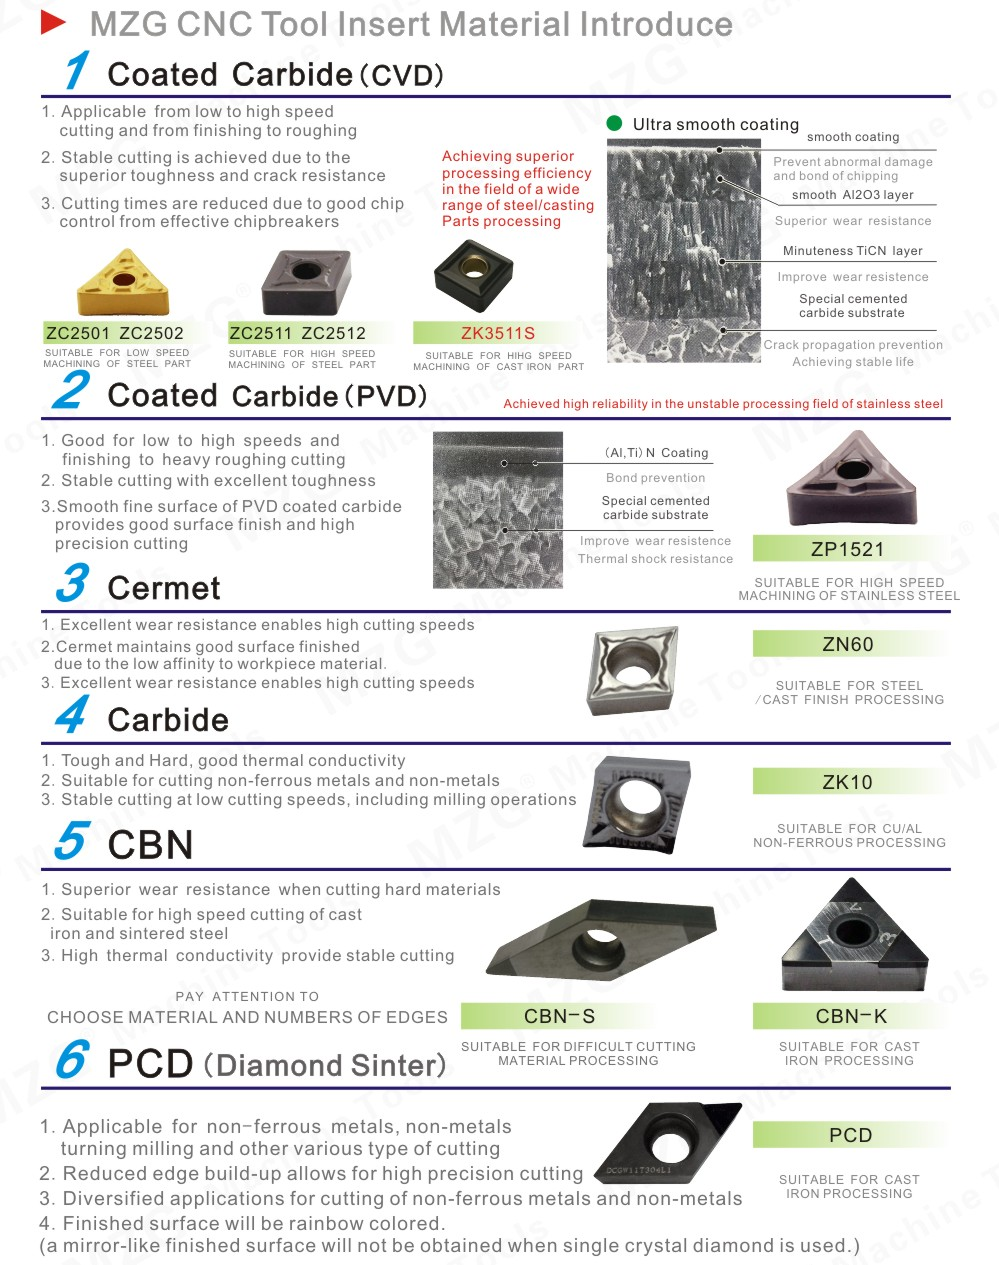 MZG CNC Tool Insert Material Introduce